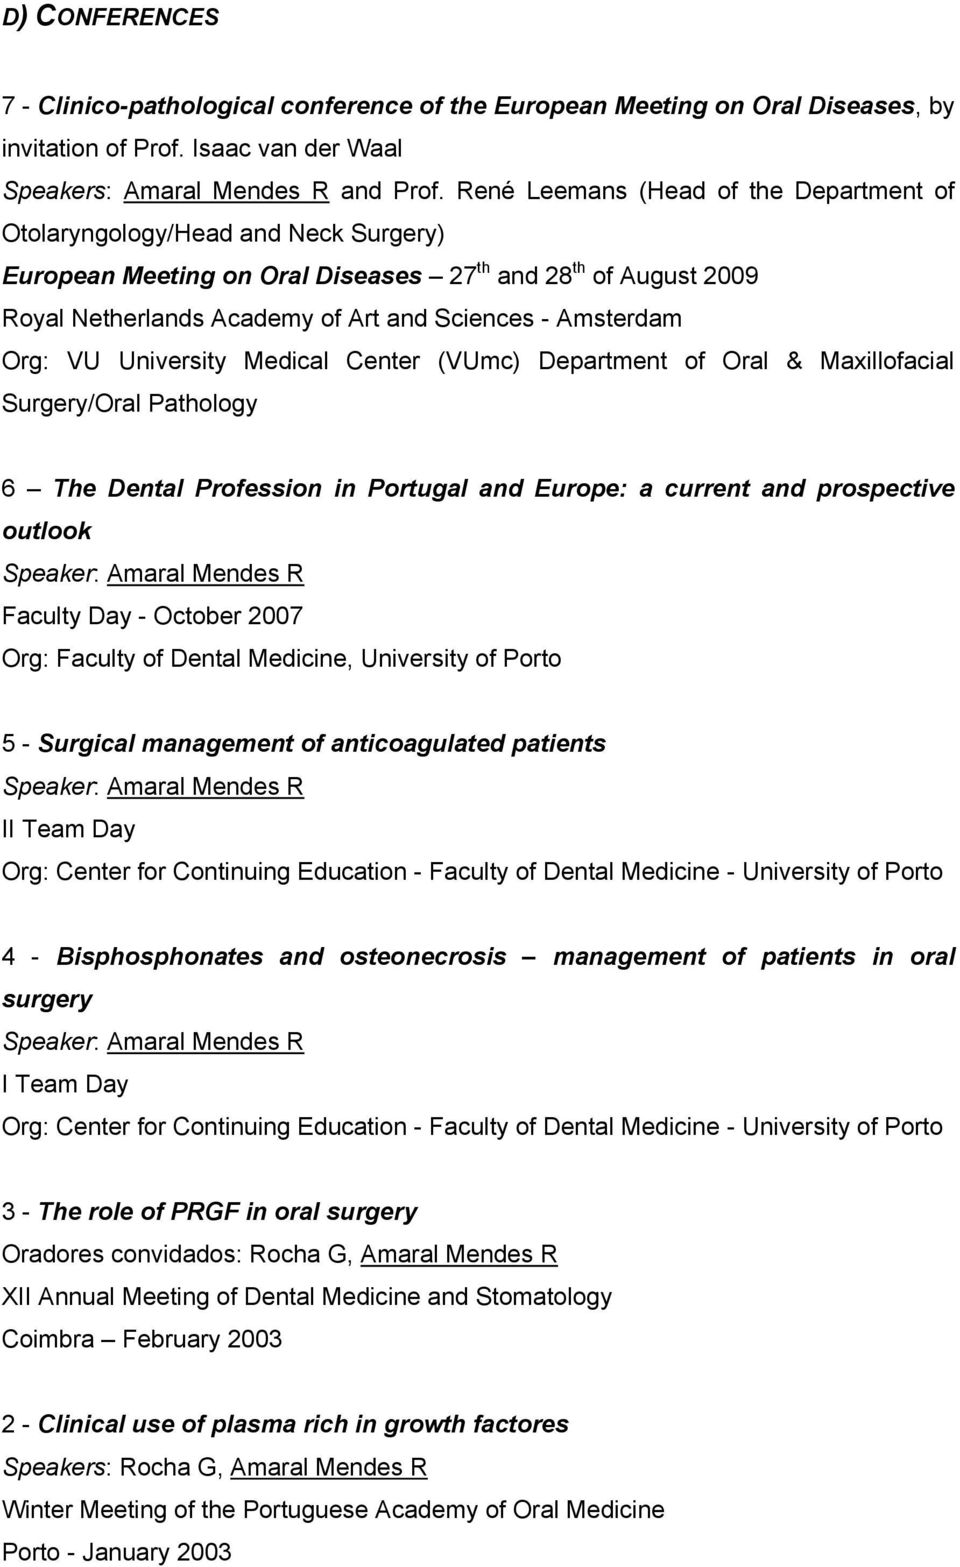 Amsterdam Org: VU University Medical Center (VUmc) Department of Oral & Maxillofacial Surgery/Oral Pathology 6 The Dental Profession in Portugal and Europe: a current and prospective outlook Speaker: